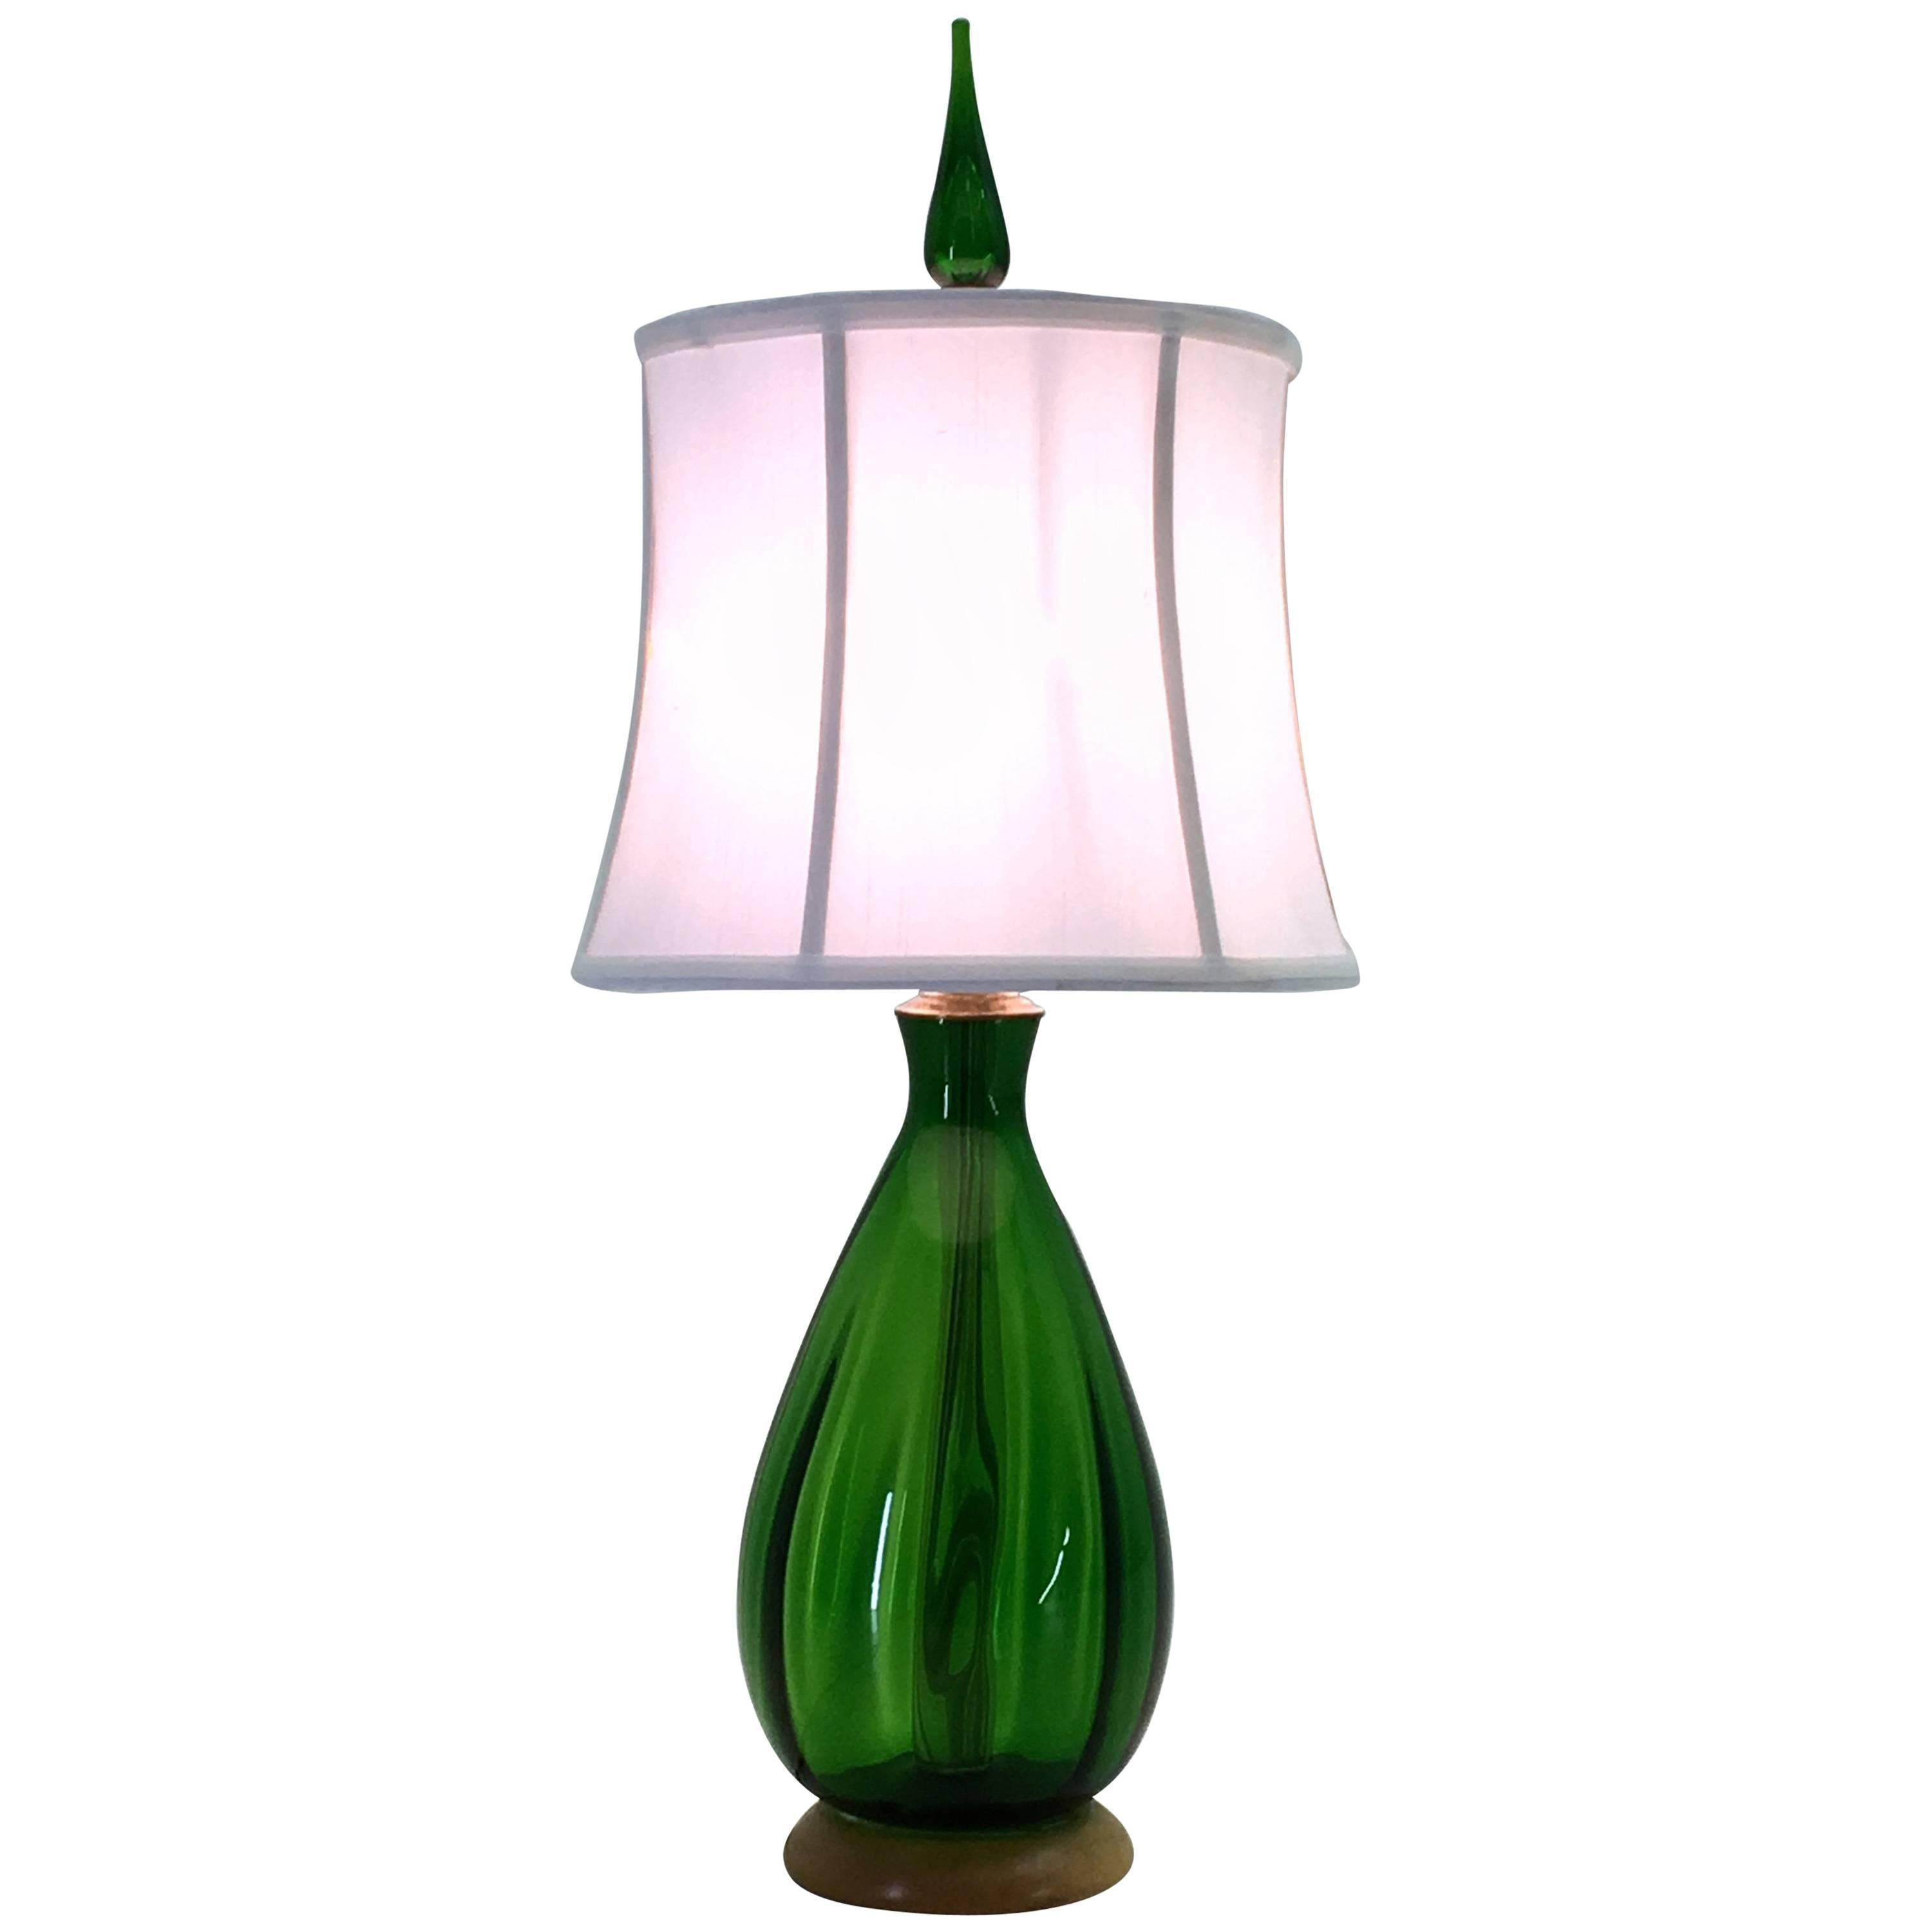 Emerald Green Glass Table Lamp By Blenko At 1stdibs